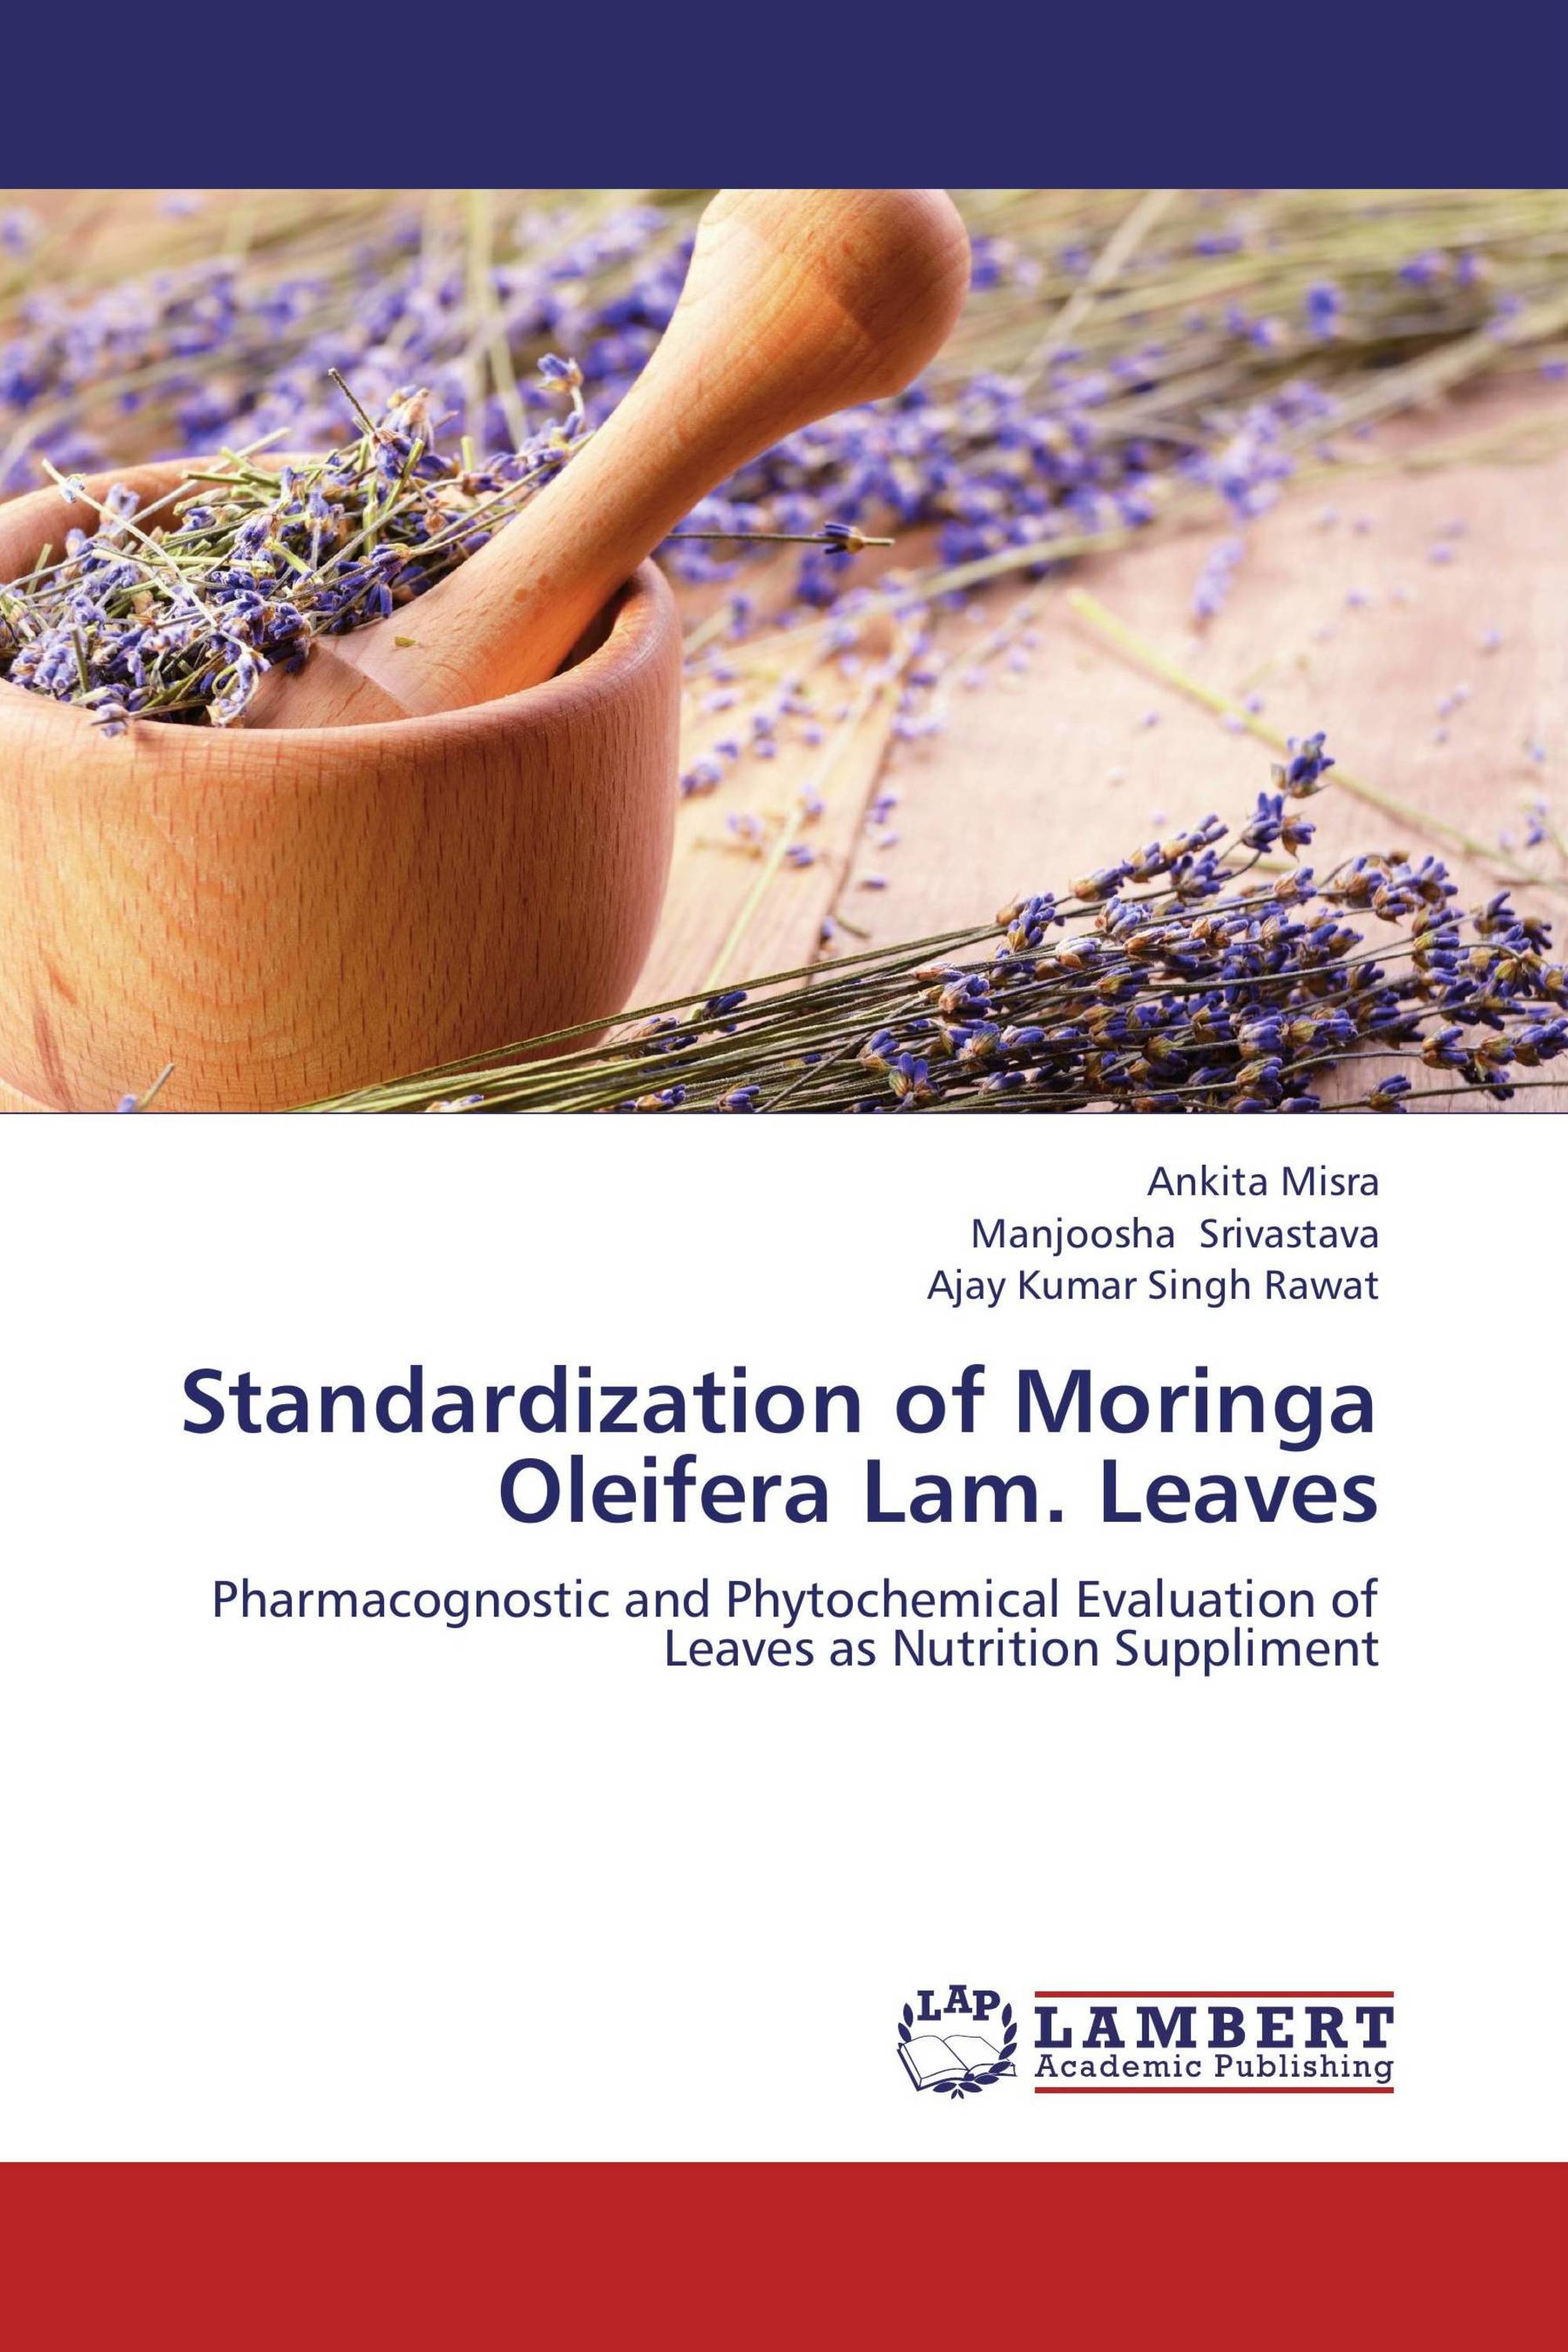 moringa olifera thesis The magical moringa by: vanita agarwal introduction subsequent elegant and very thorough work, published in 1964 as a phd thesis by bennie badgett.